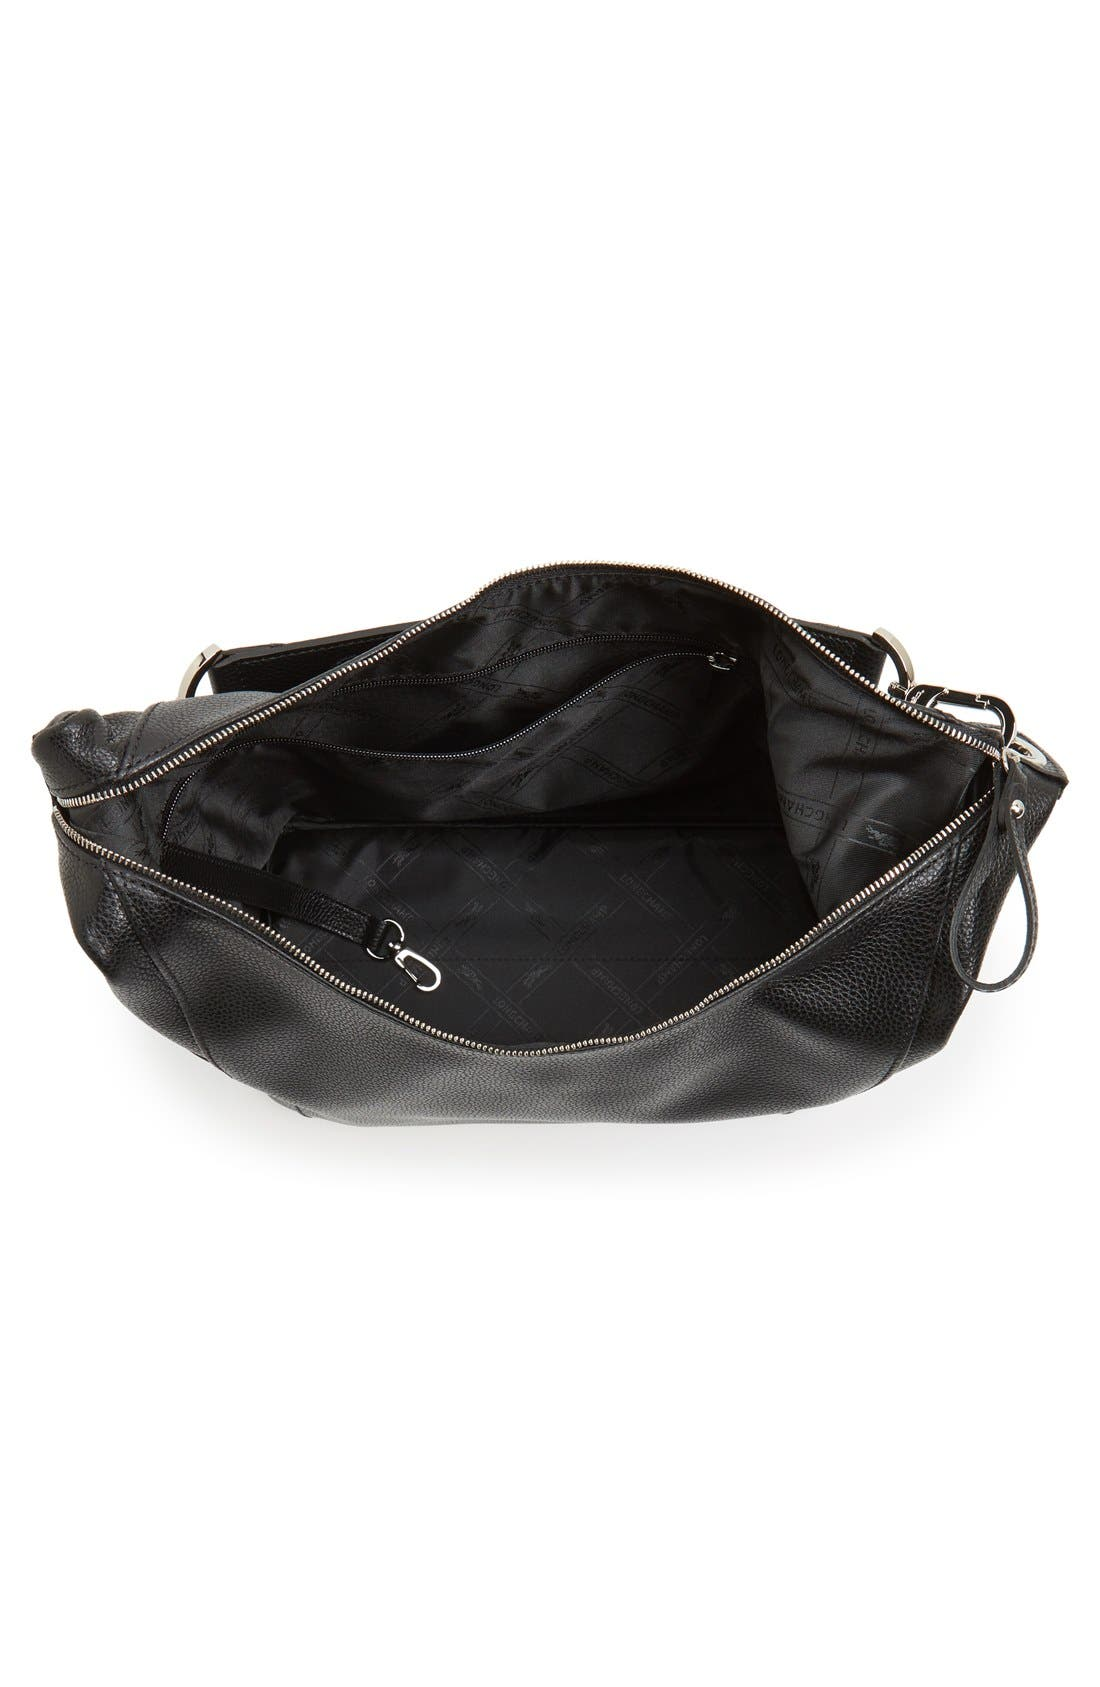 'Le Foulonne' Leather Hobo Bag,                             Alternate thumbnail 4, color,                             Black